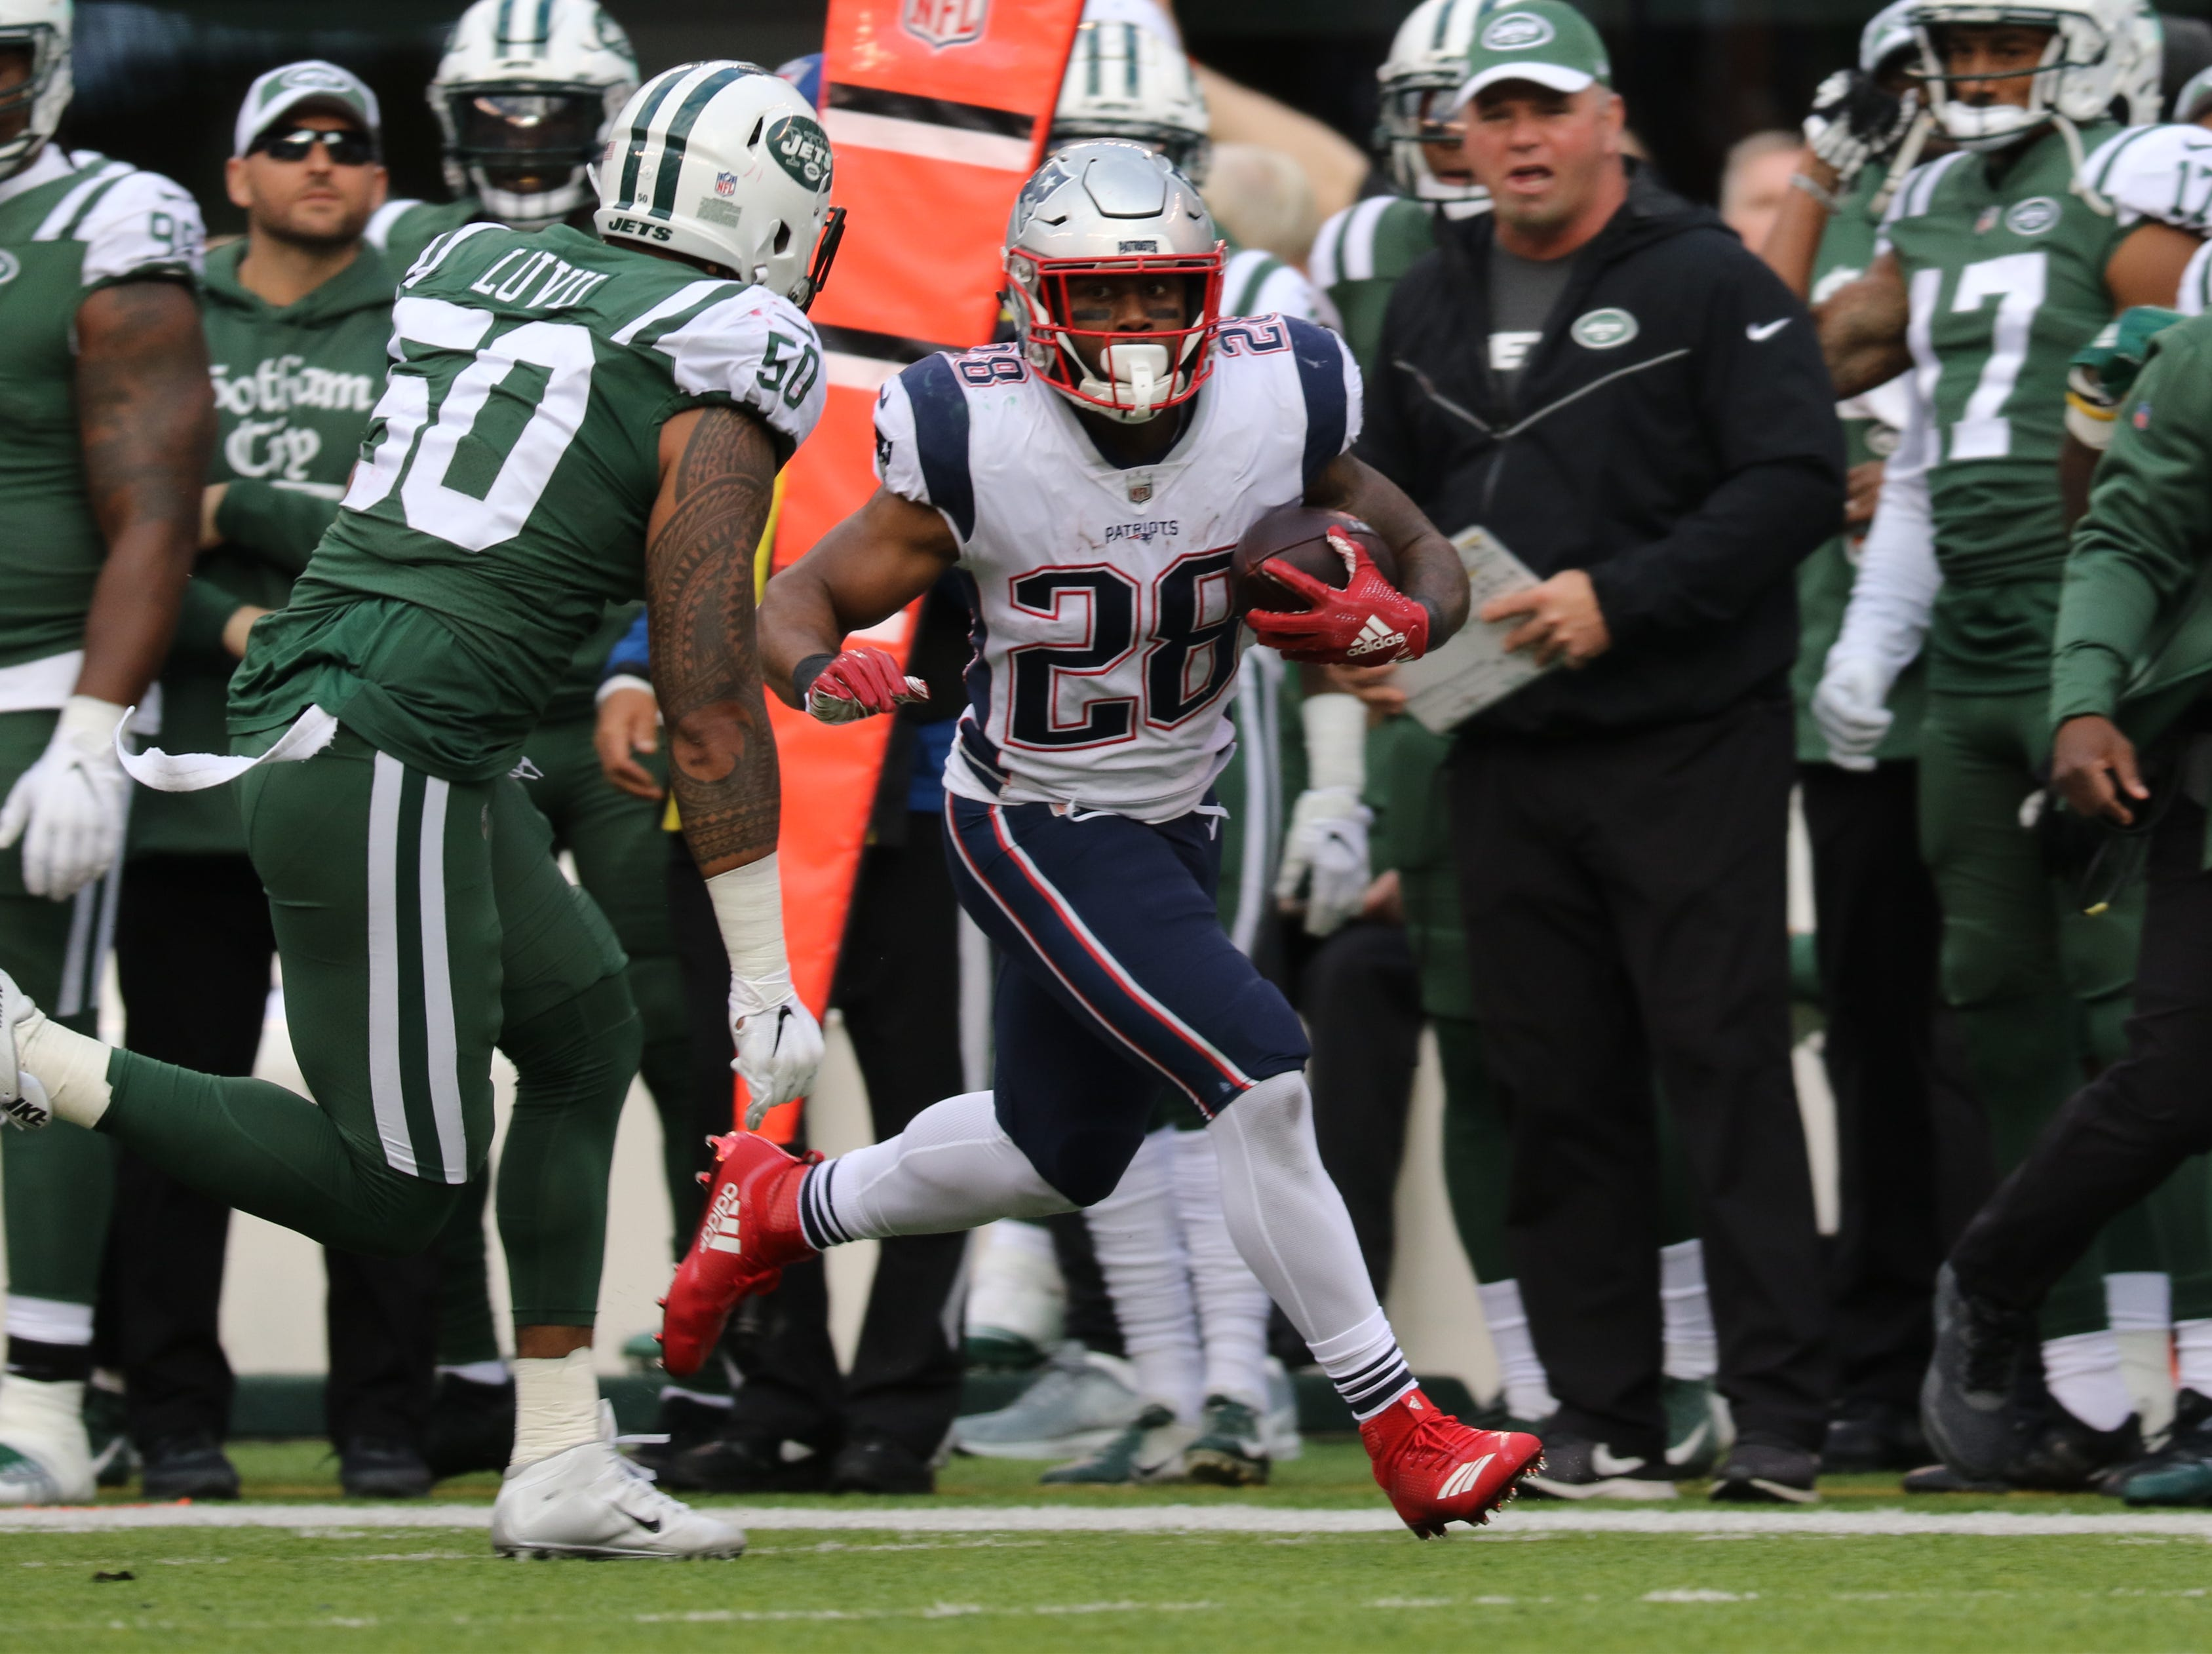 James White, of the Patriots, runs with the ball as Frankie Luvu plays defense for the Jets. November 25, 2018.